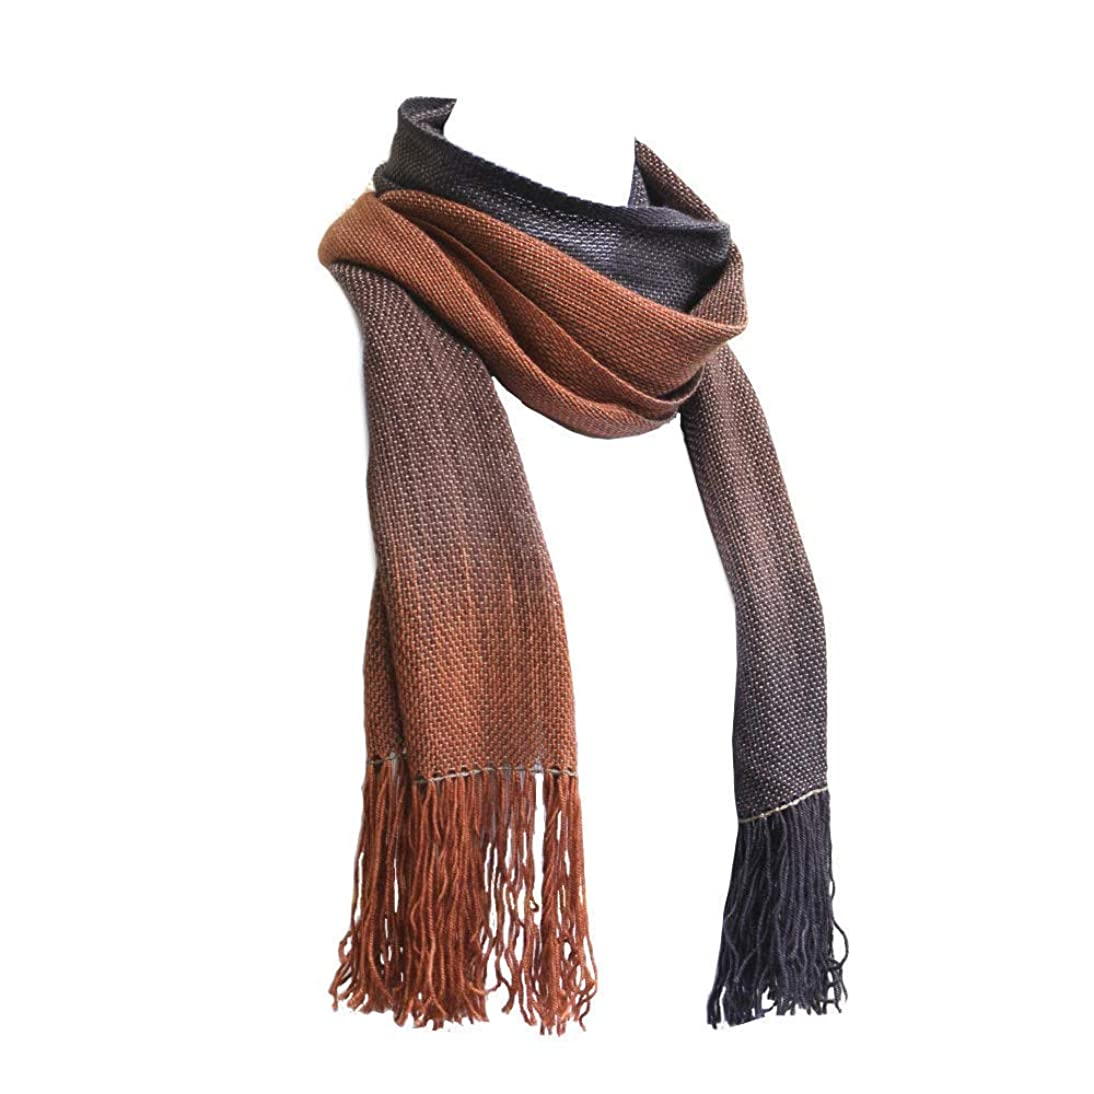 Woven Scarf in Brown Shades, Merino Wool Scarf, Unisex Scarf, Gift for Her, Gift for Him, Men Scarf, Women Scarf, Extra Long Scarf with Fringe zcfi854314722649